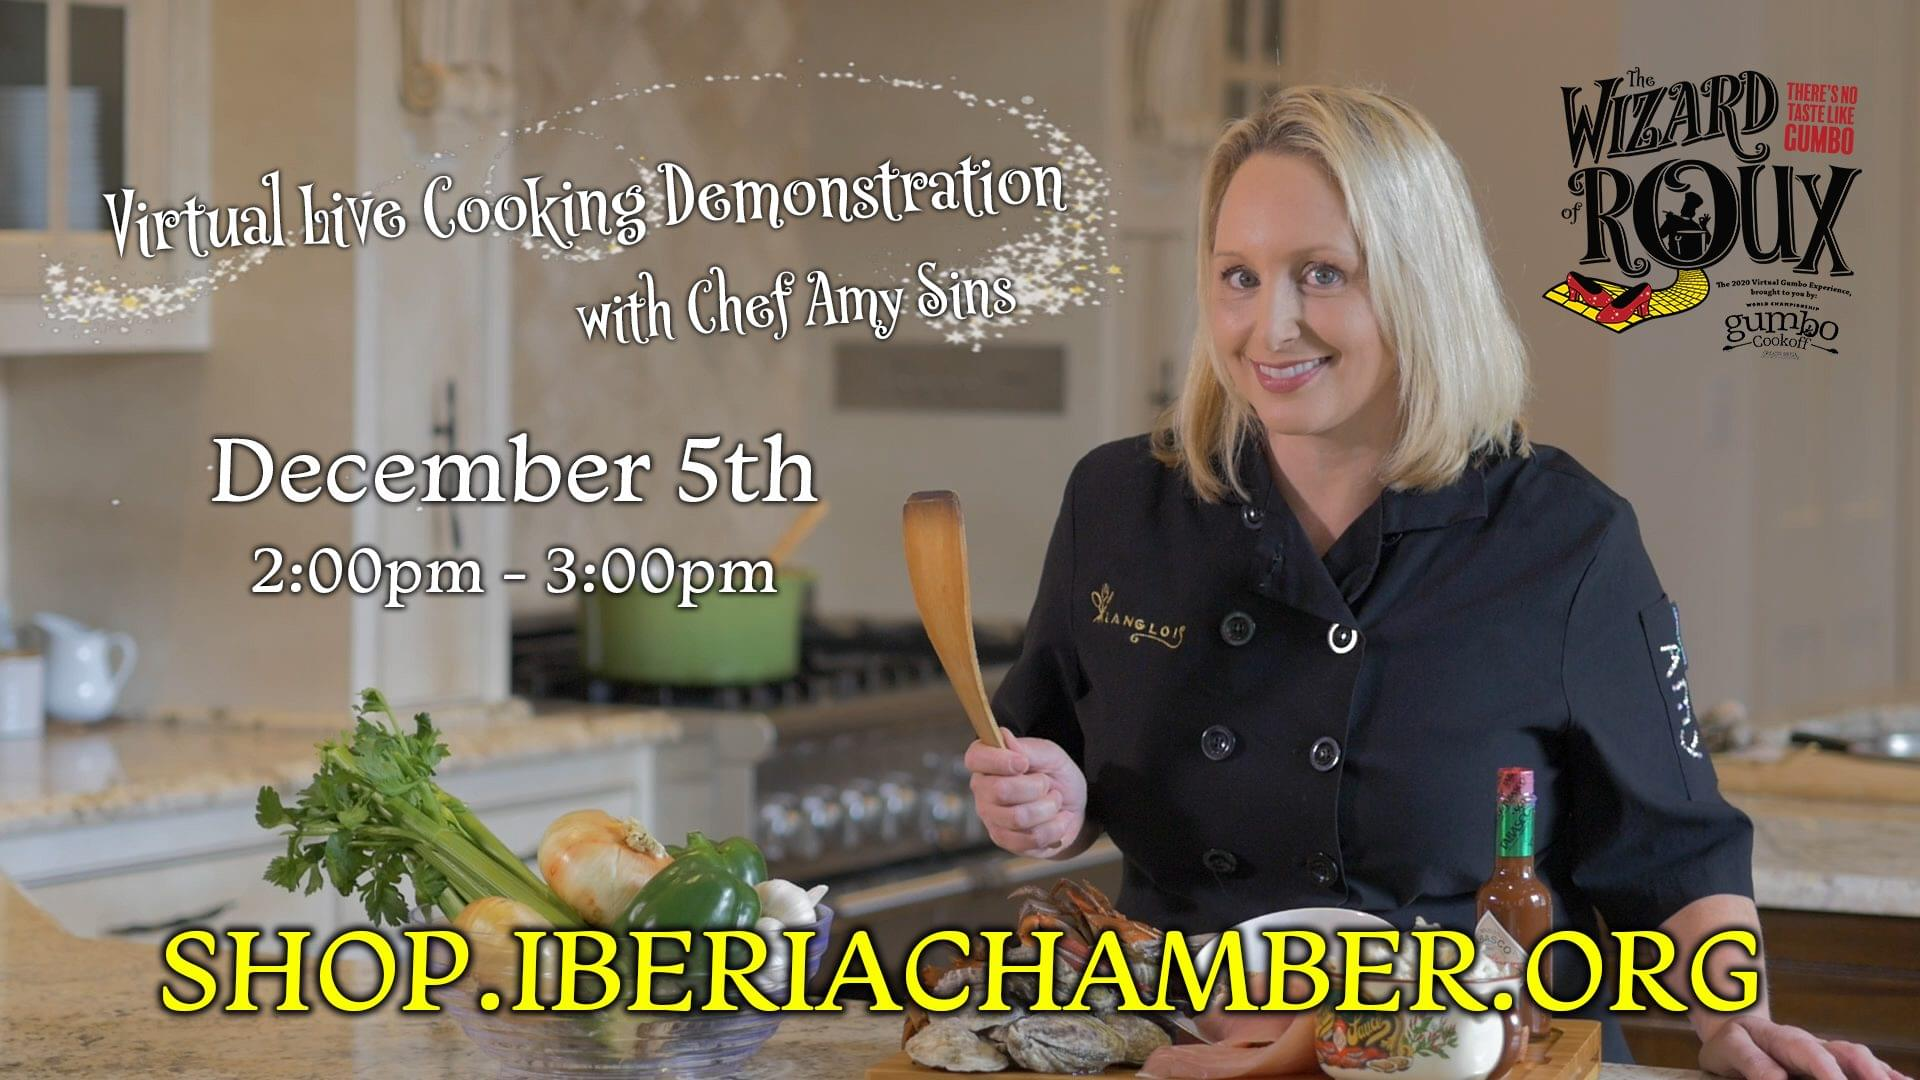 World Championship Gumbo Cook Off Live Virtual Cooking Demonstration